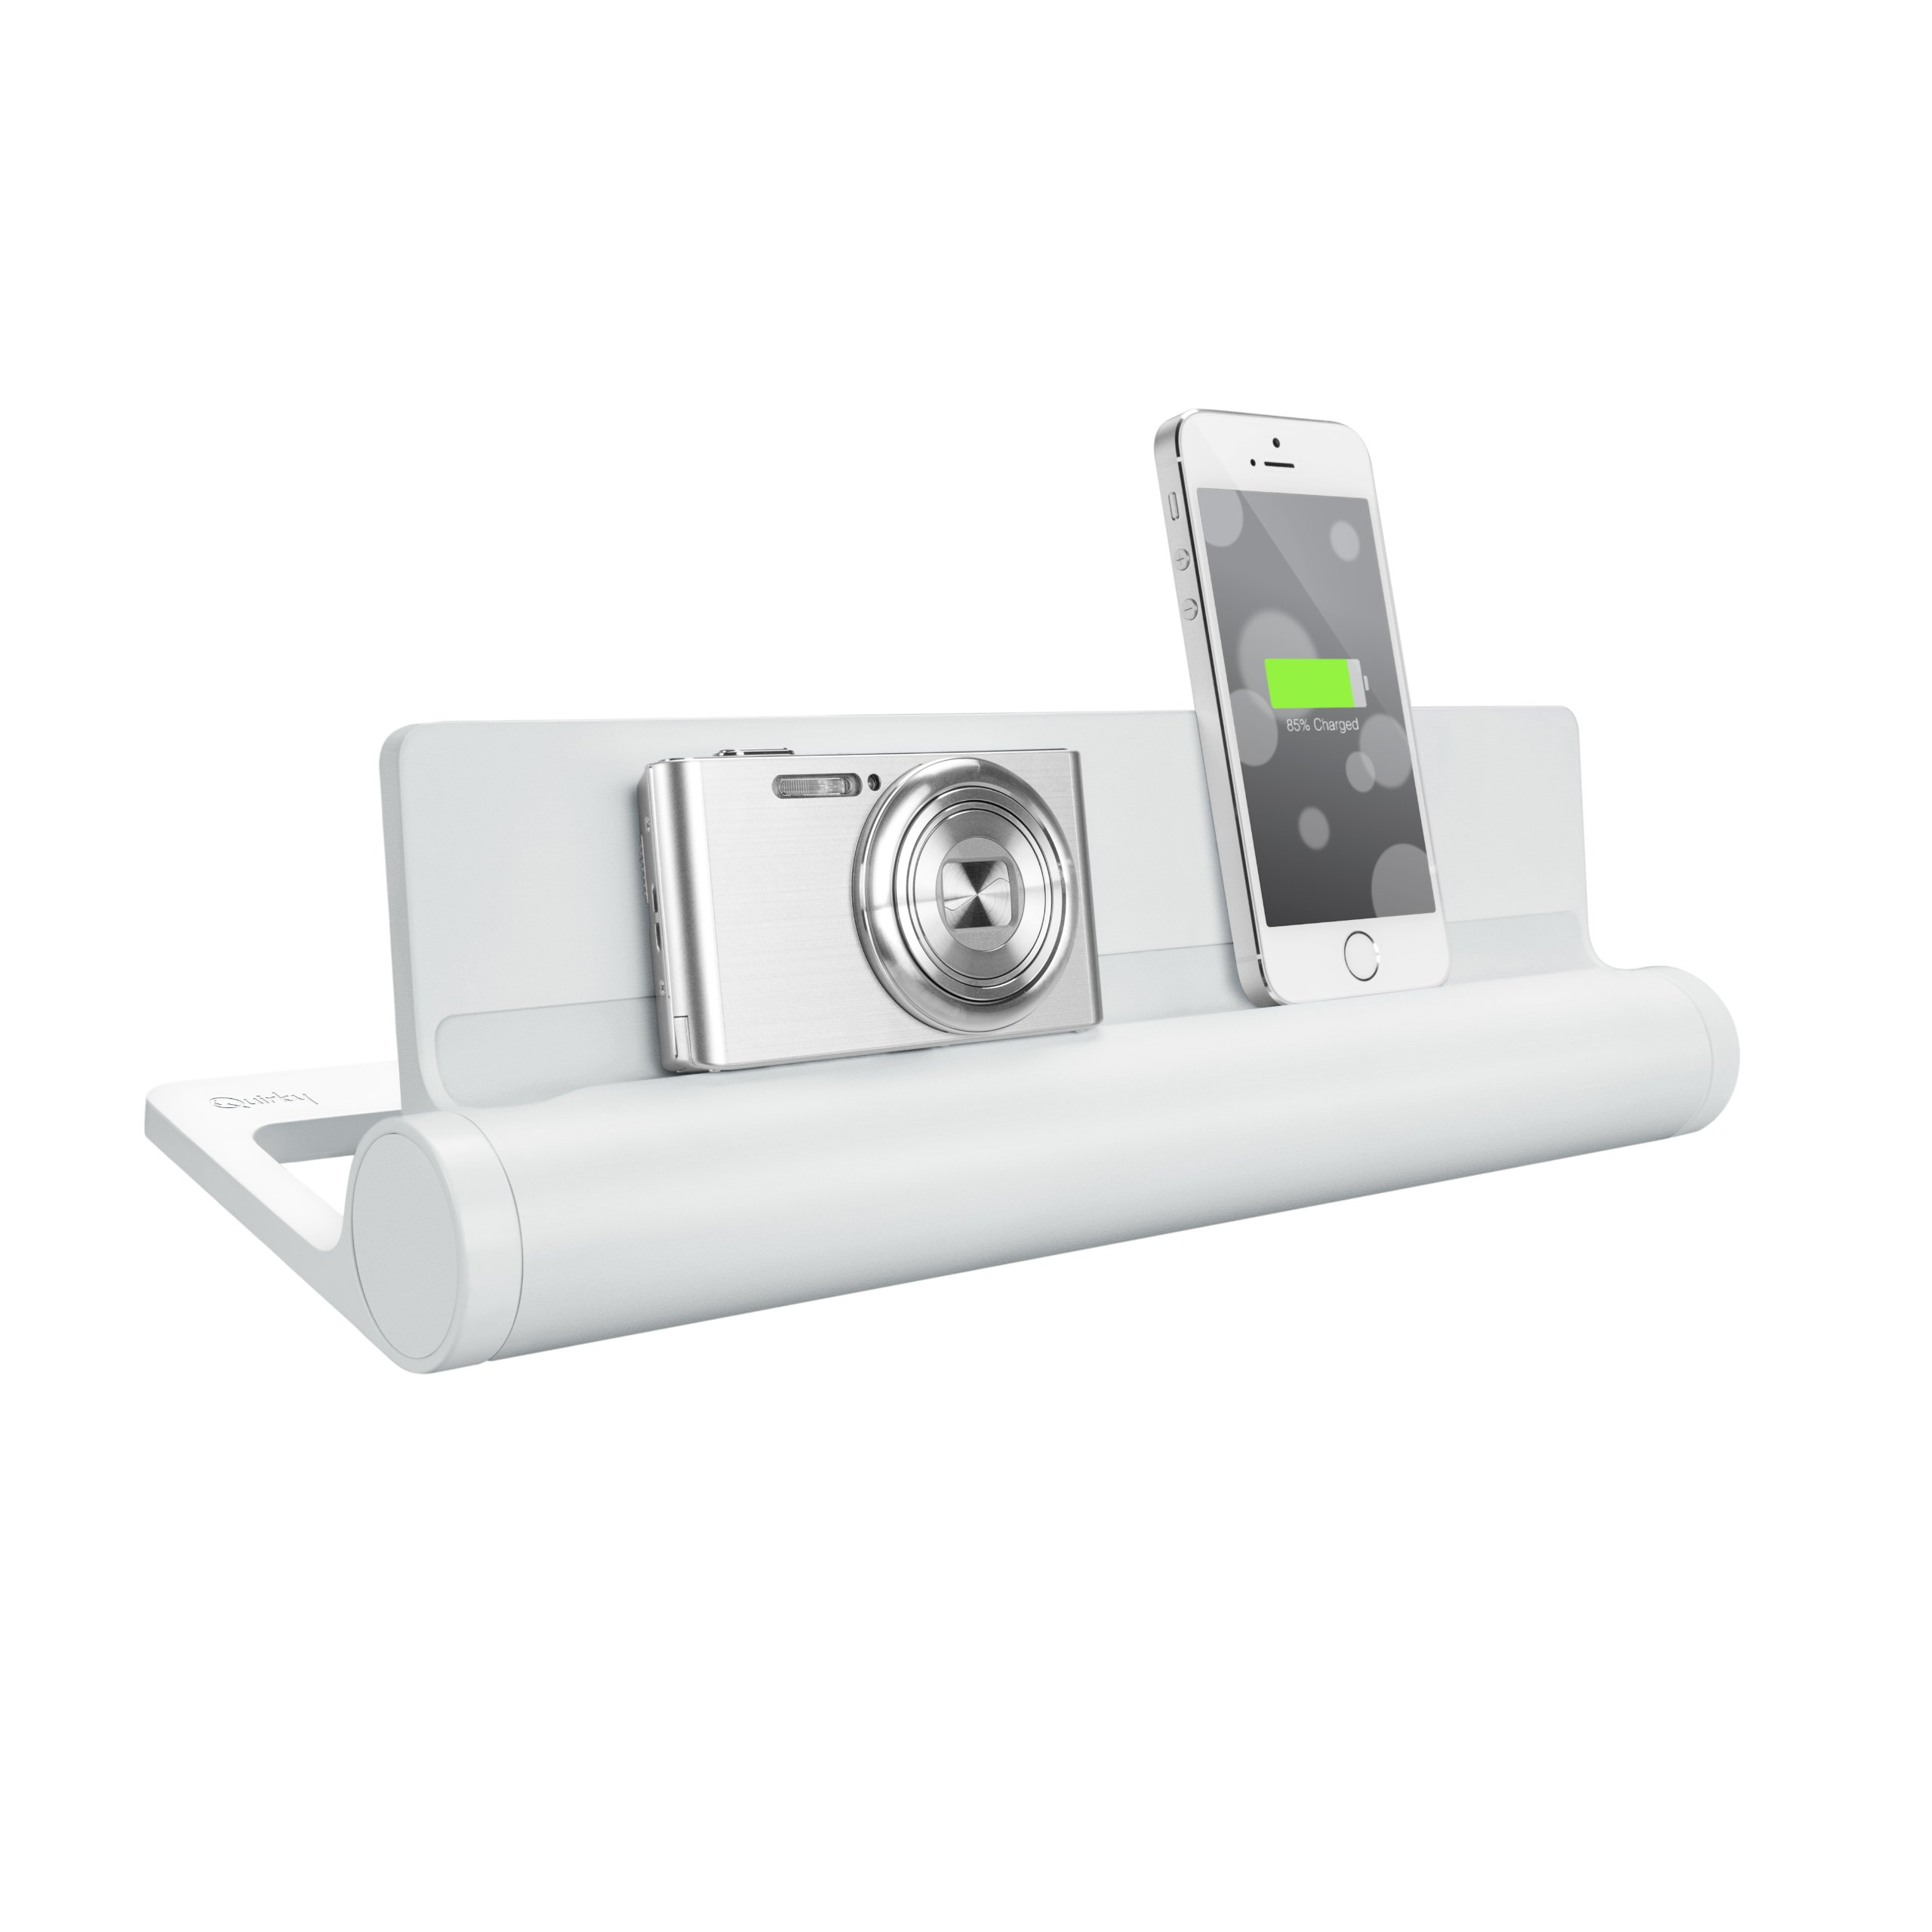 Quirky PCVG3-WH01 Converge Universal USB Docking Station, White by Quirky